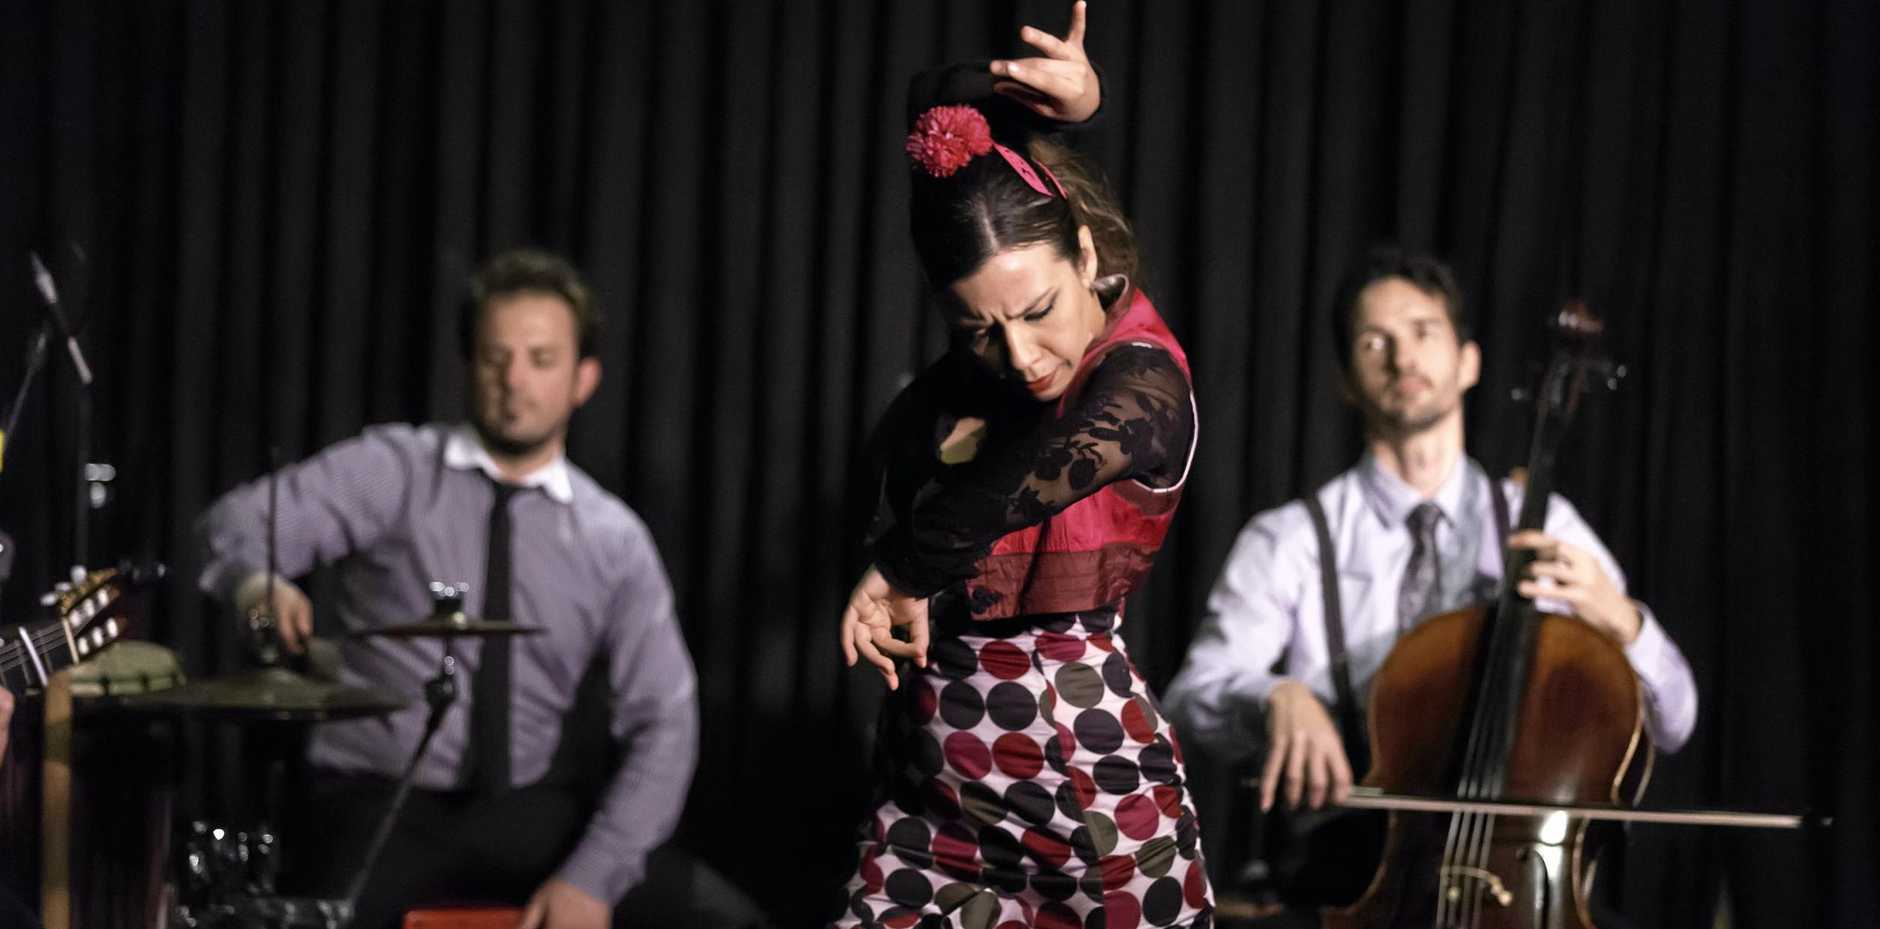 MUSIC AND DANCE: Arrebato Ensemble is a contemporary flamenco, joined by dancer Chachy Penalver.